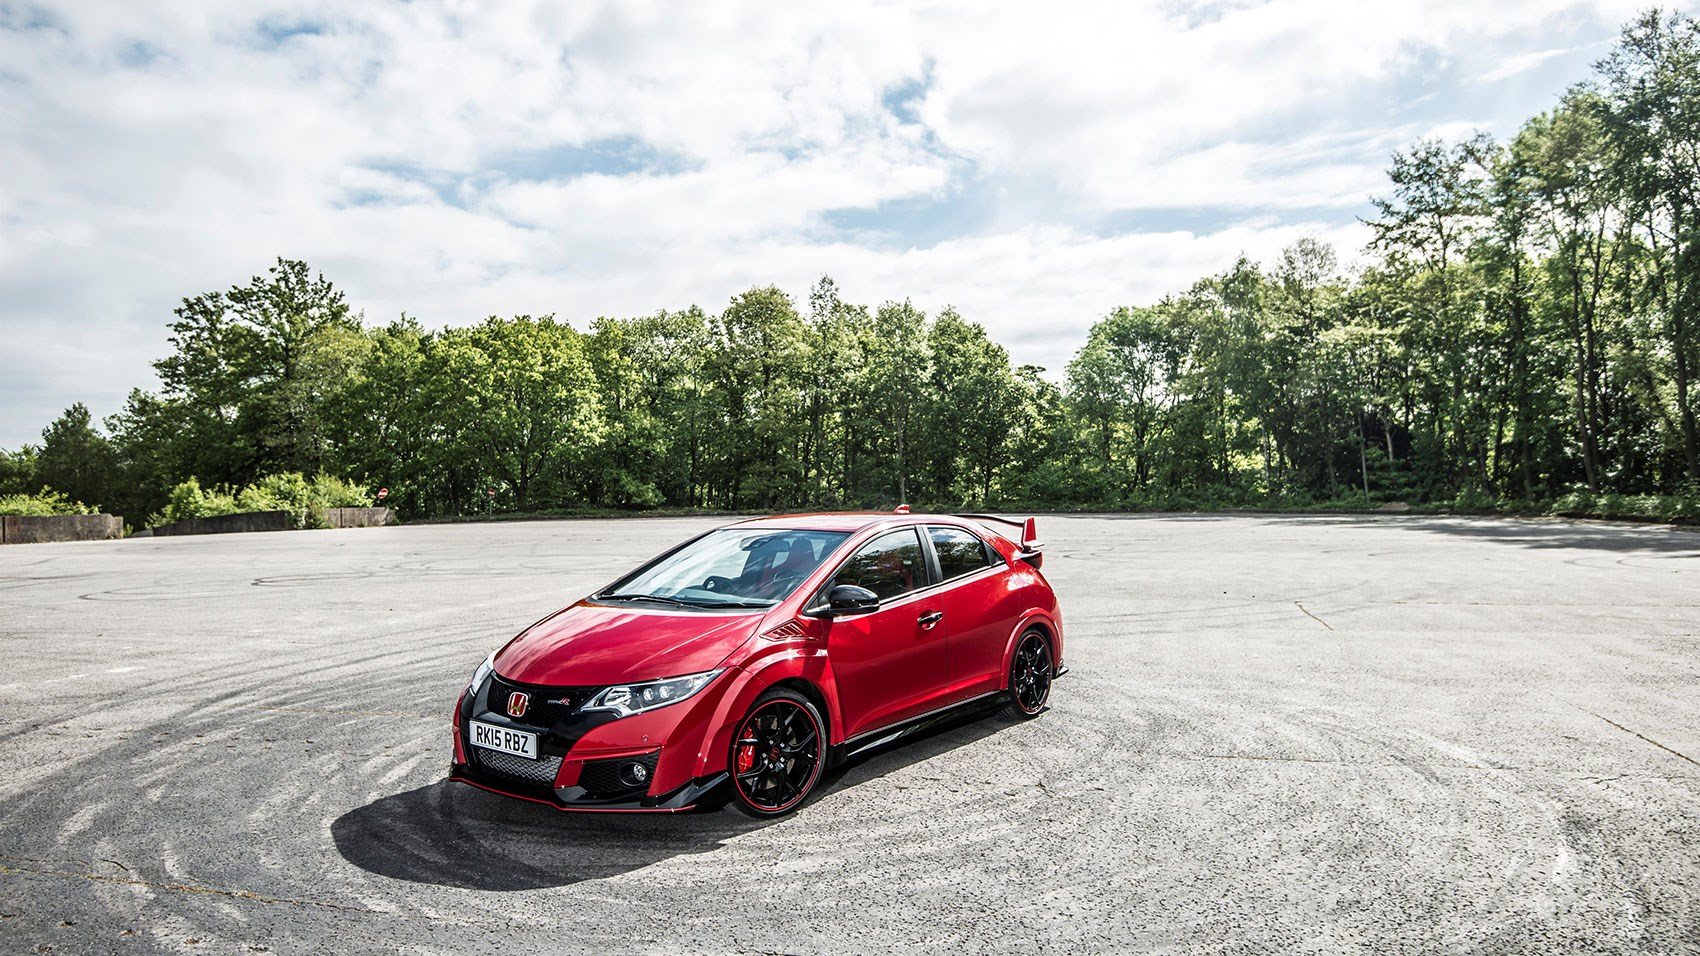 Subaru Wrx Sti 2016 Long Term Test Review Car Magazine Motor Blower Honda All New Jazz Rs Ori Check Out The 991 Spec Vented Wheelarches Excellent Grippy